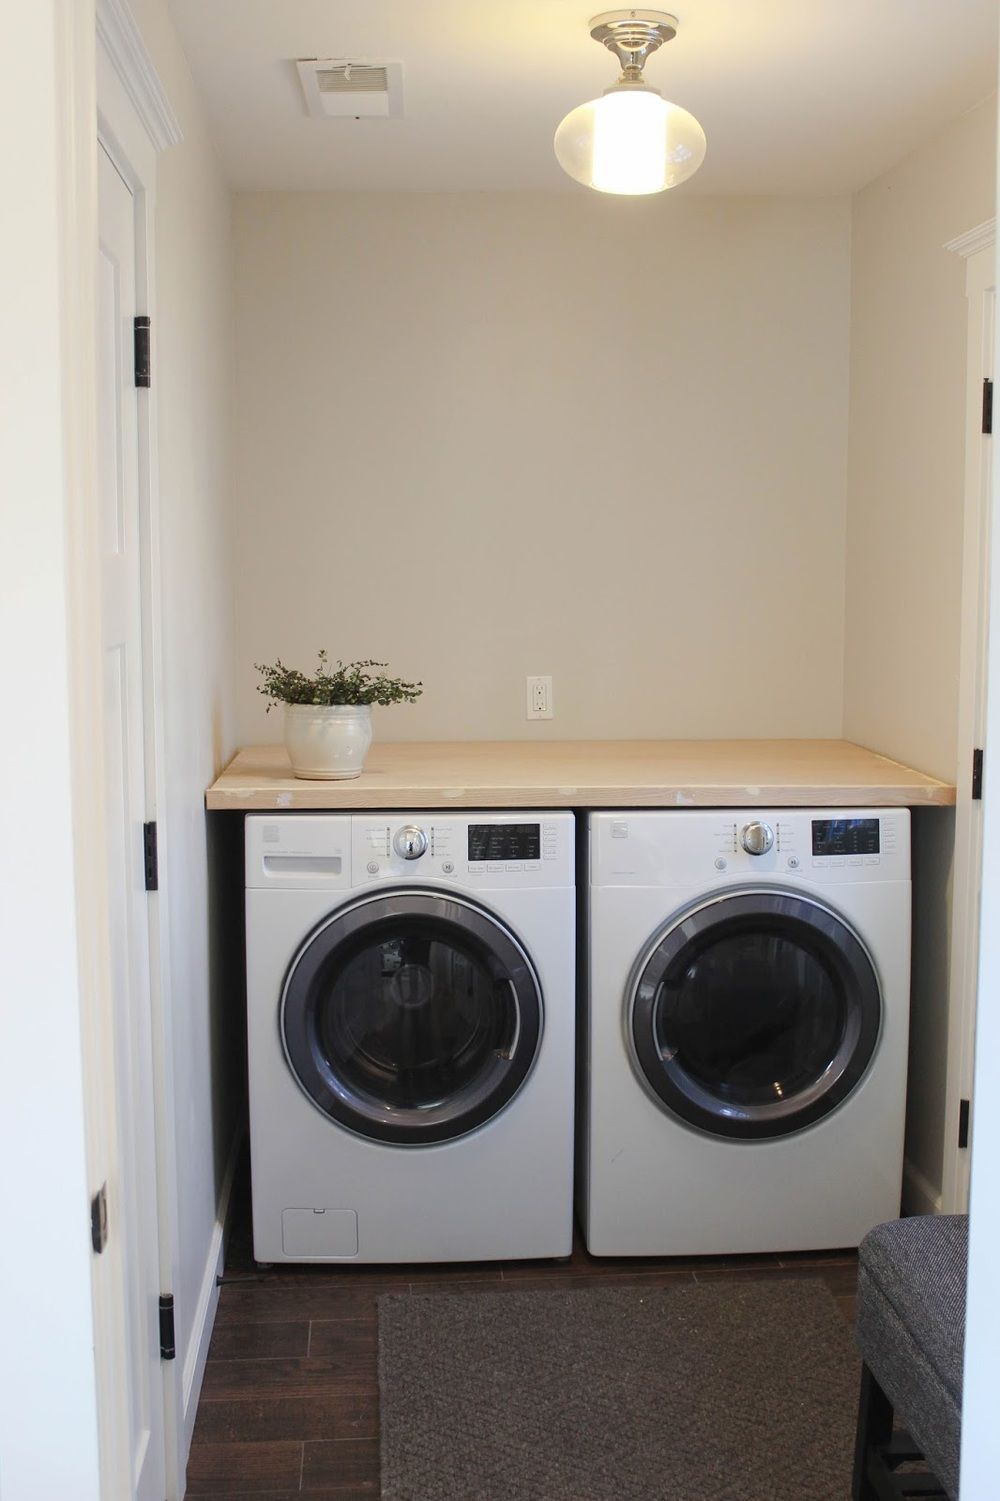 Diy Laundry Room Countertop Laundry Room Diy Laundry Room